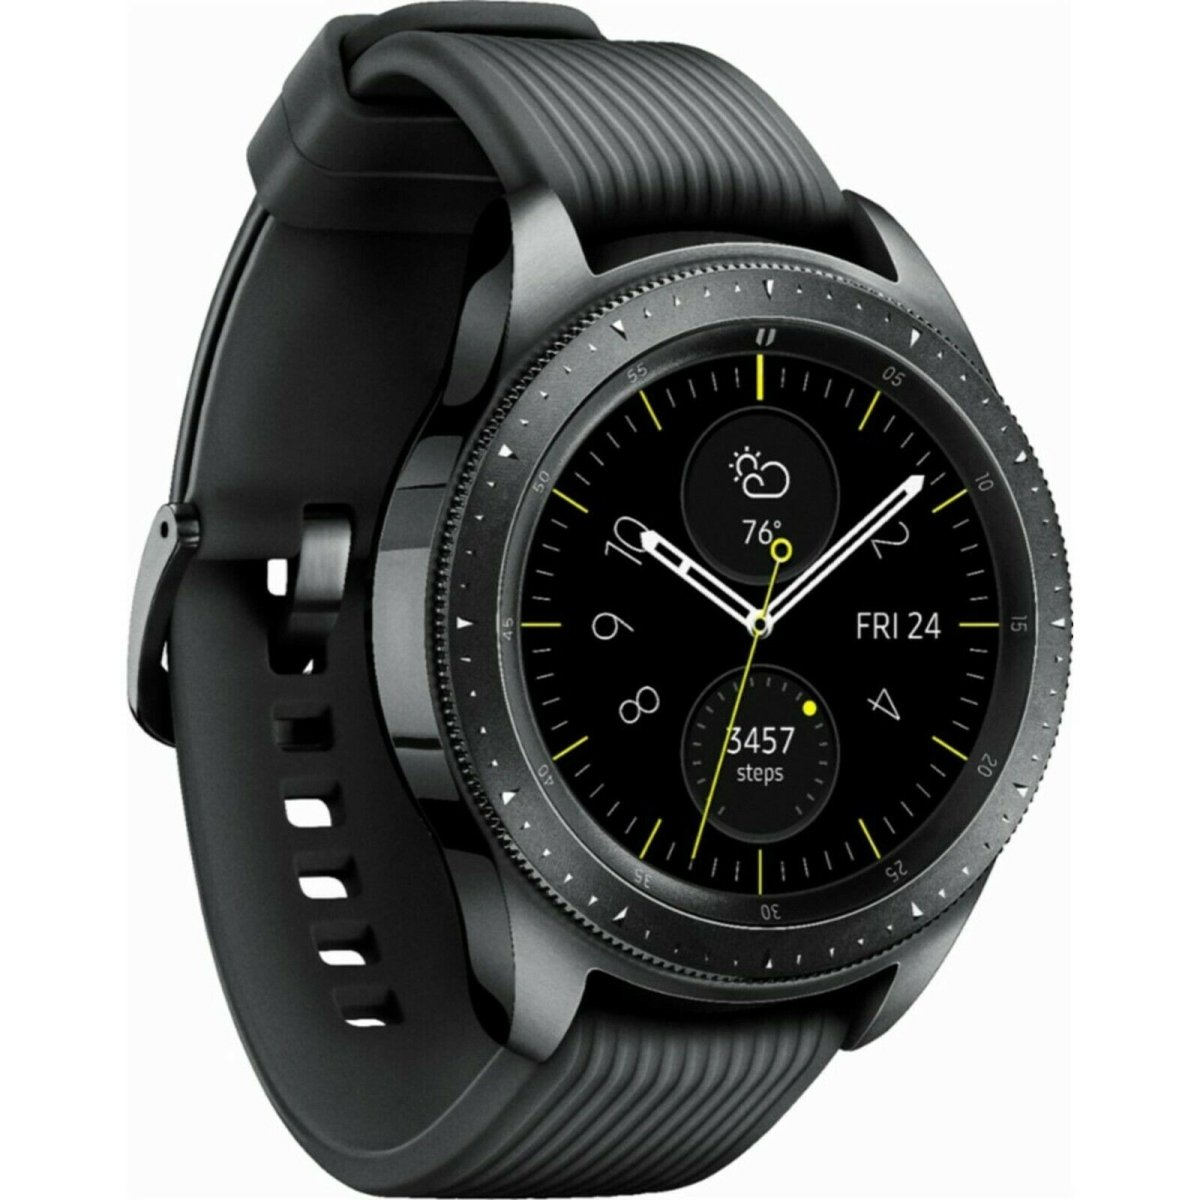 Samsung Galaxy Watch SM-R810 42mm (AT&T Unlocked) - Midnight Black - Fix Or Cell Now Device Shop